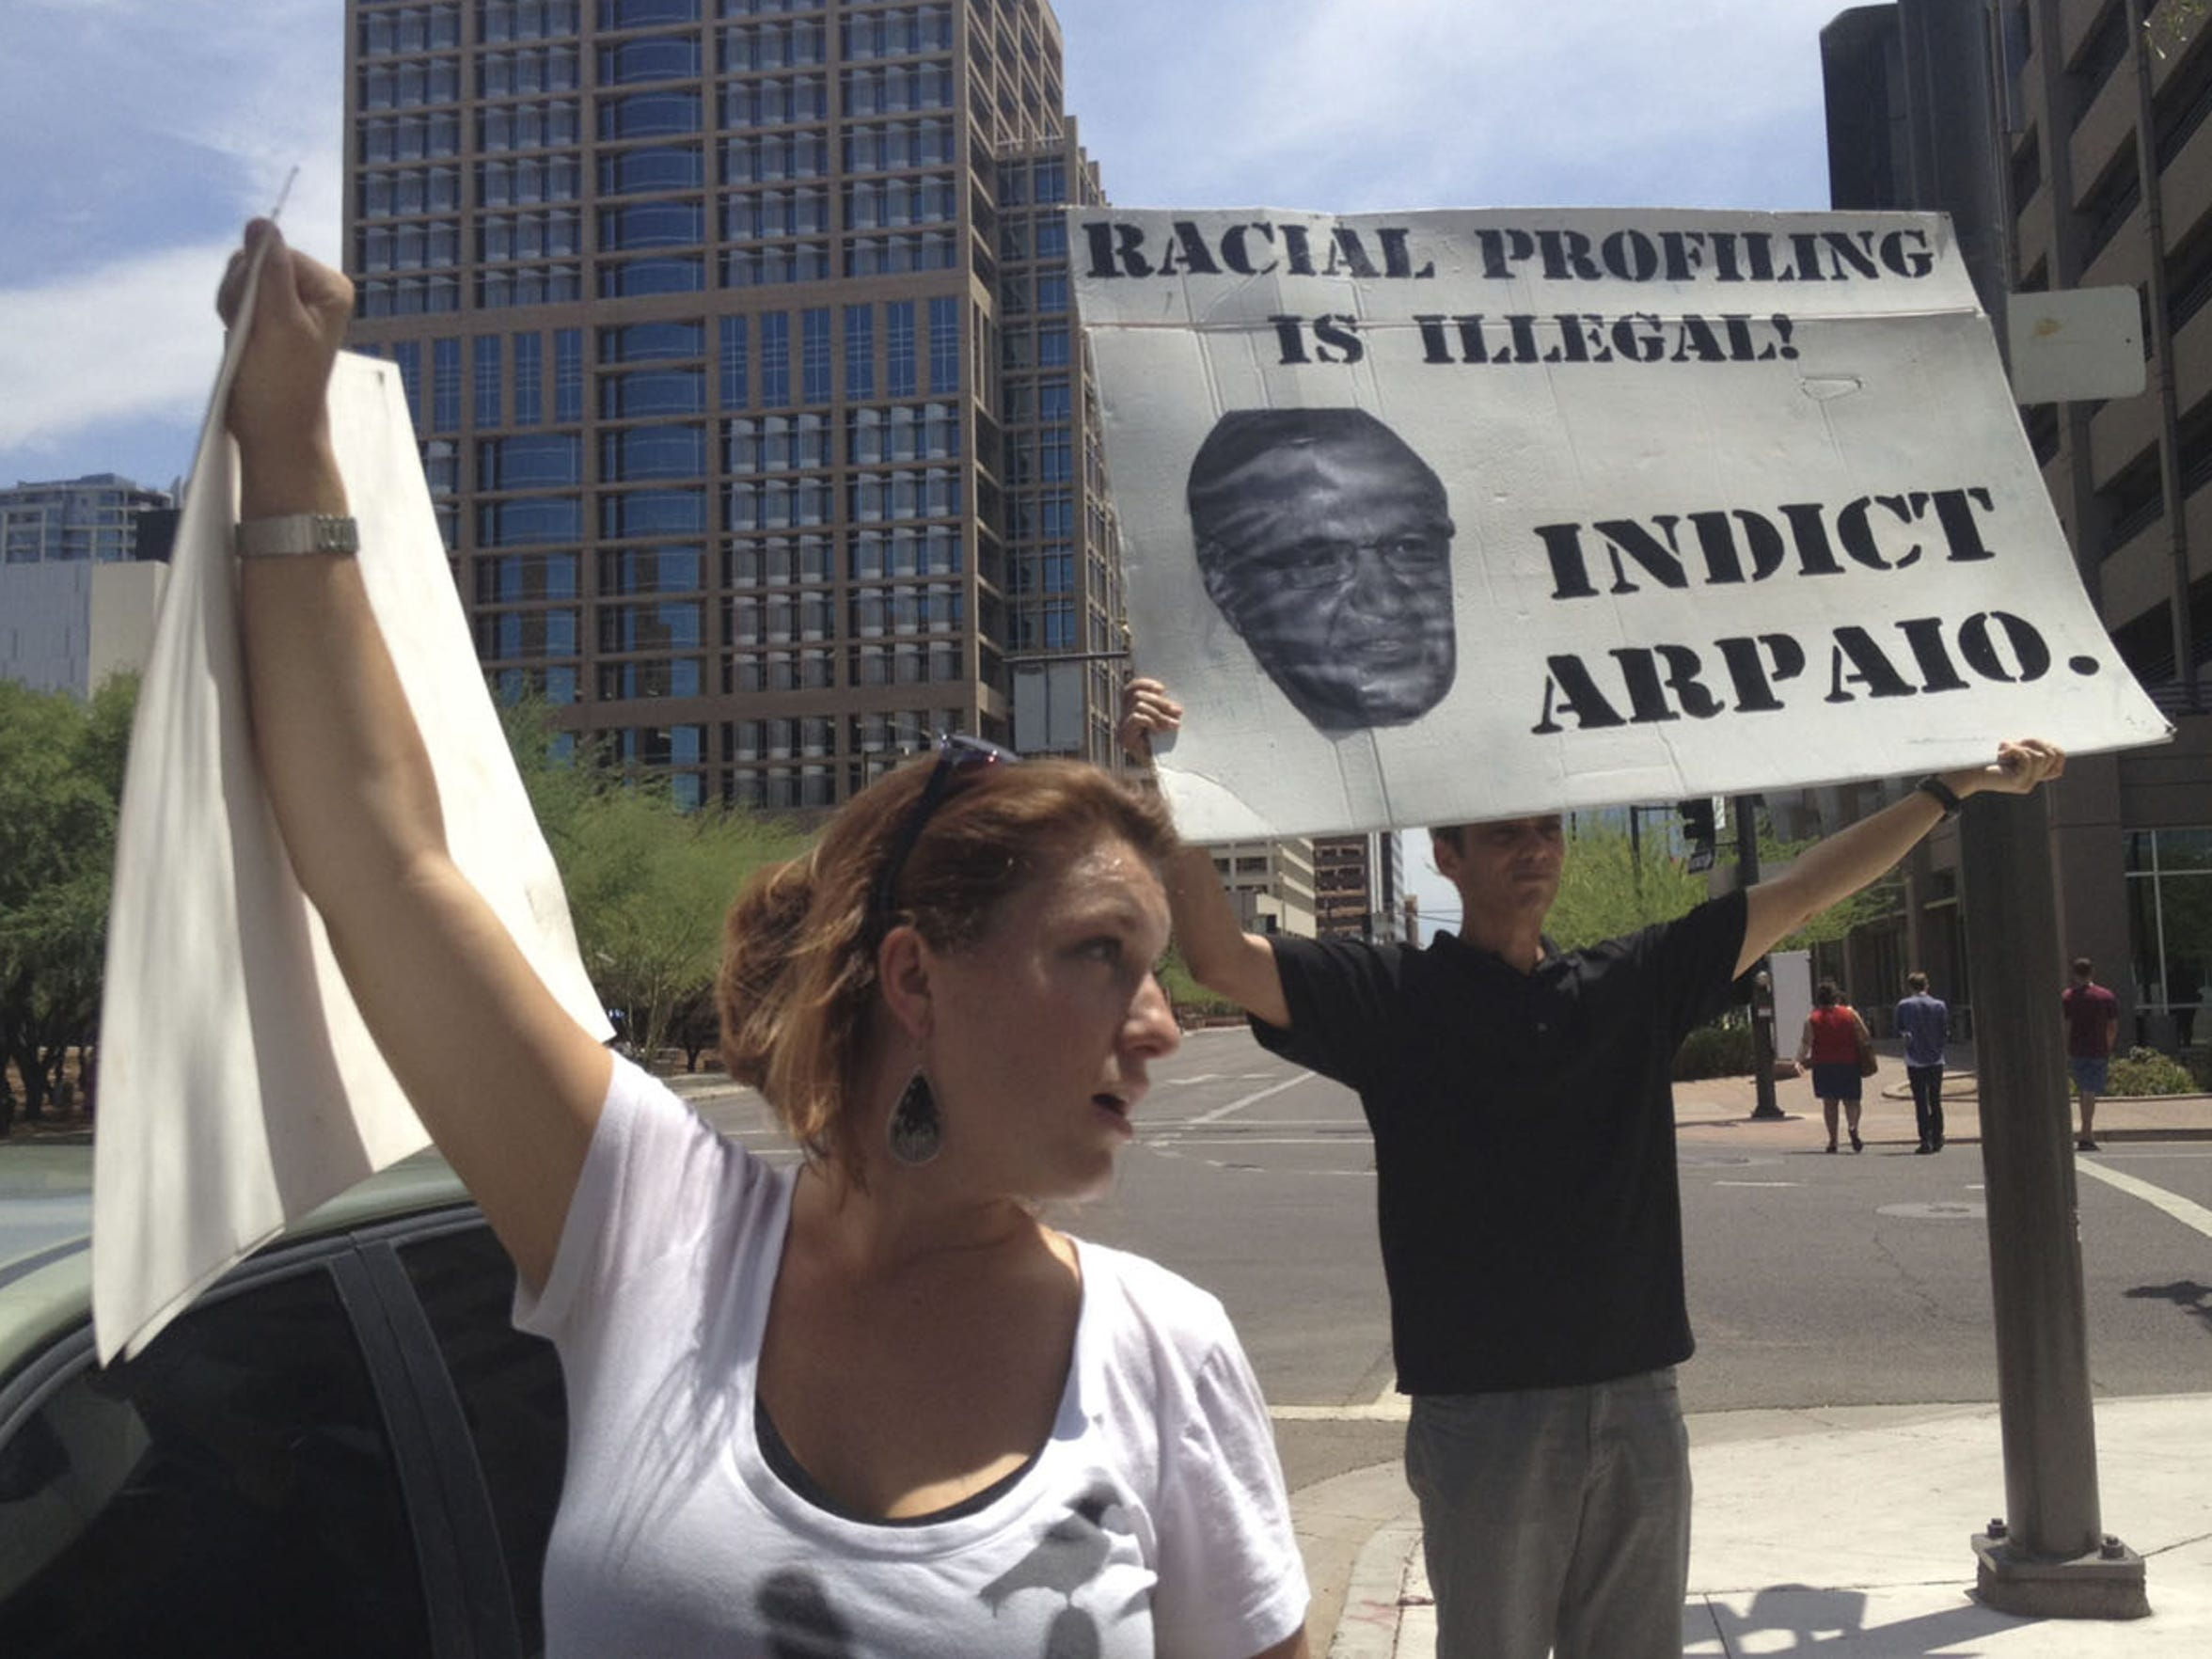 Arpaio's saturation patrols and raids targeting illegal